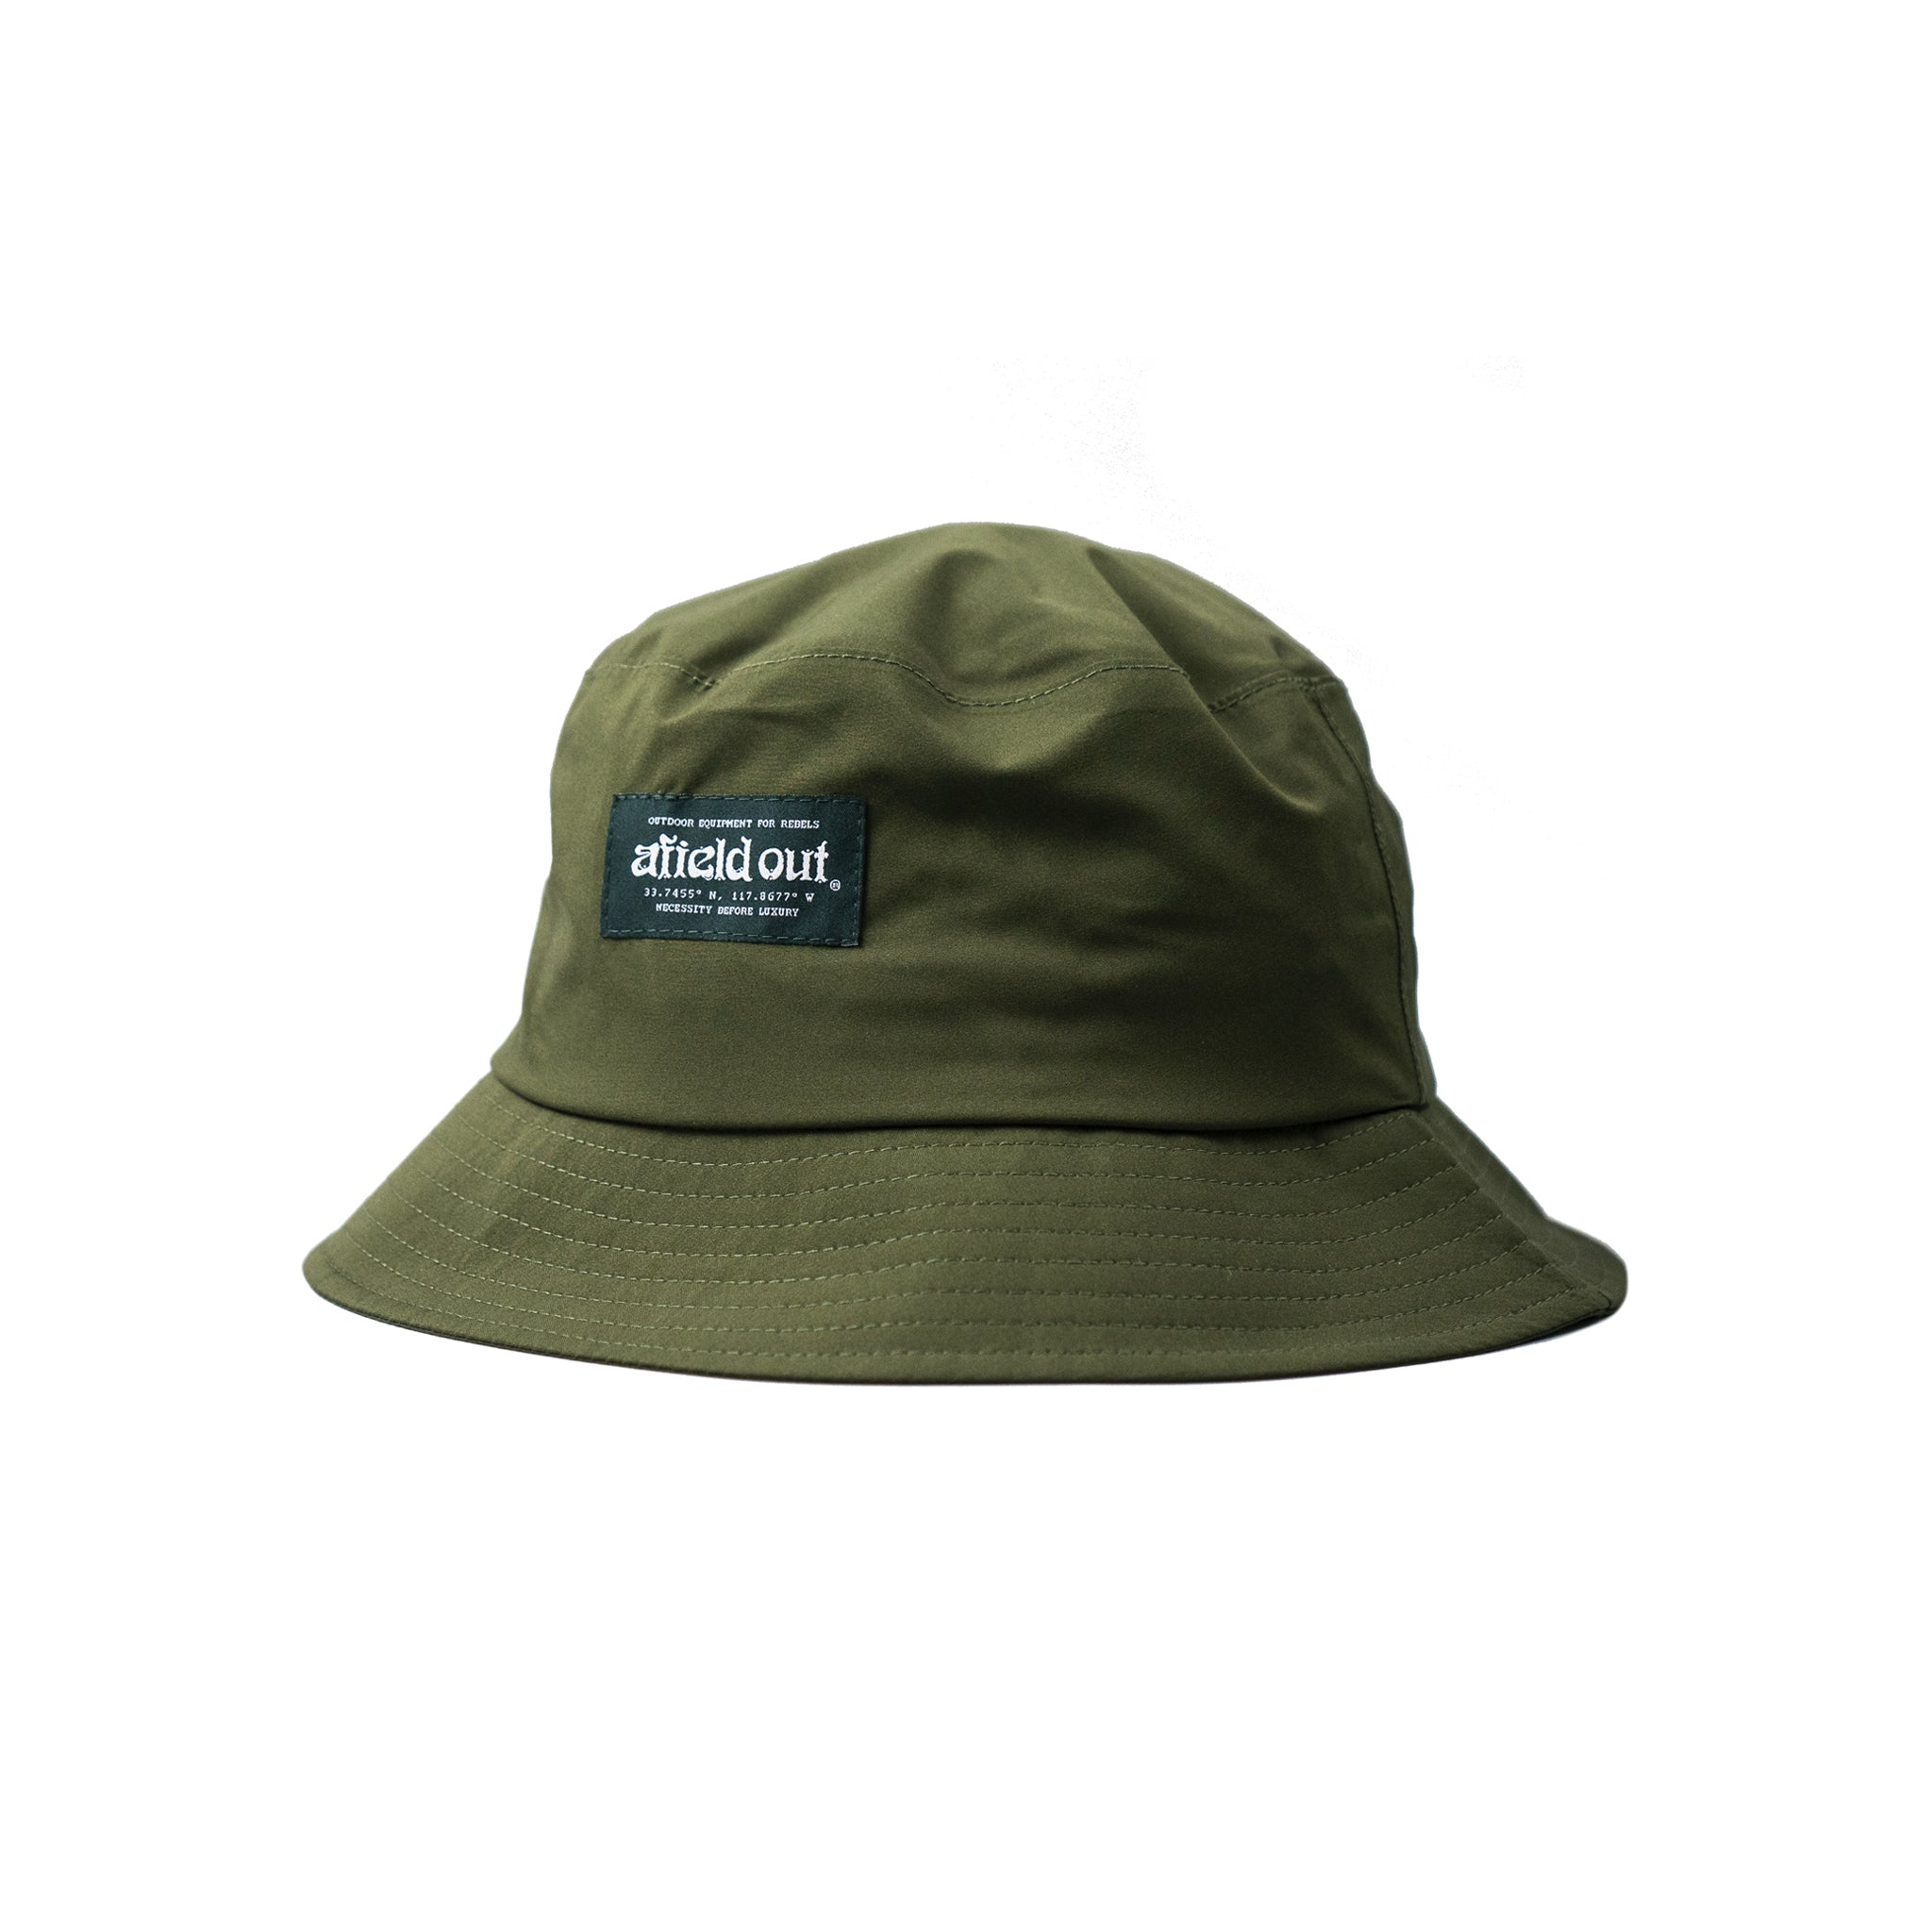 Sage Darby Bucket Hat